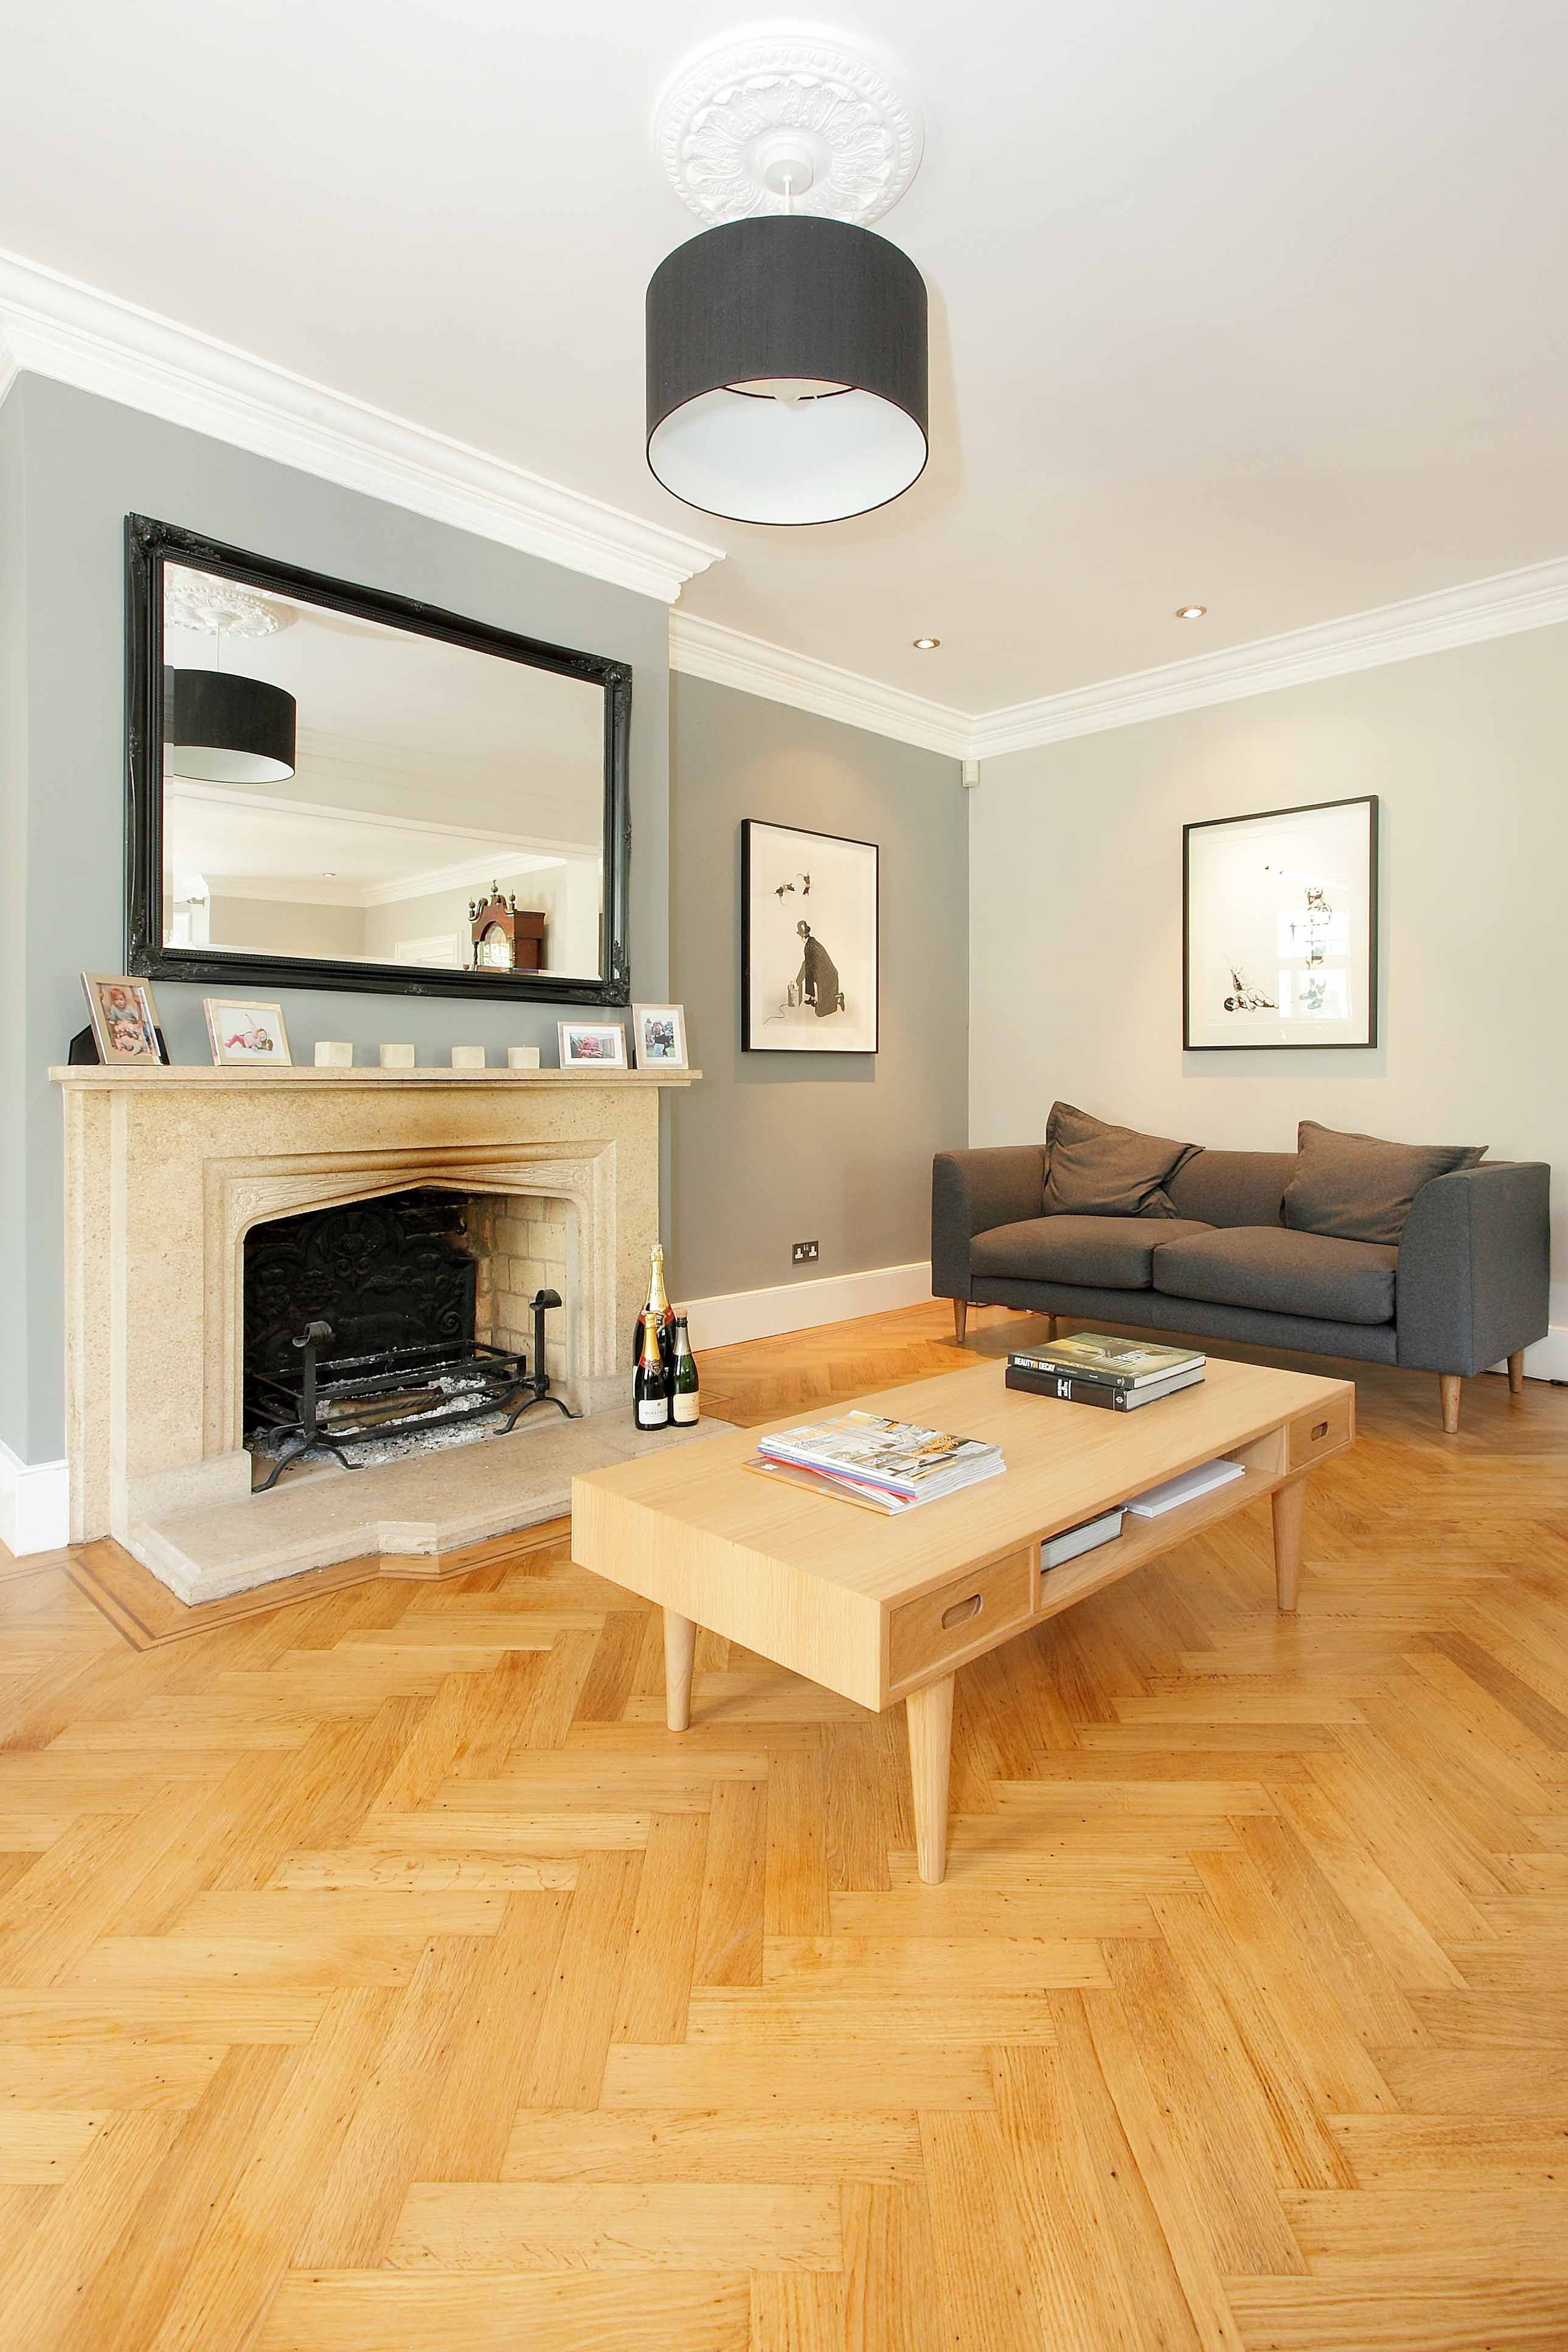 Original Solid Oak Parquet Herringbone Wood Flooring Was Discovered By Our Client Under A Cheap Worn Out Ca Herringbone Wood Herringbone Wood Floor Wood Floors